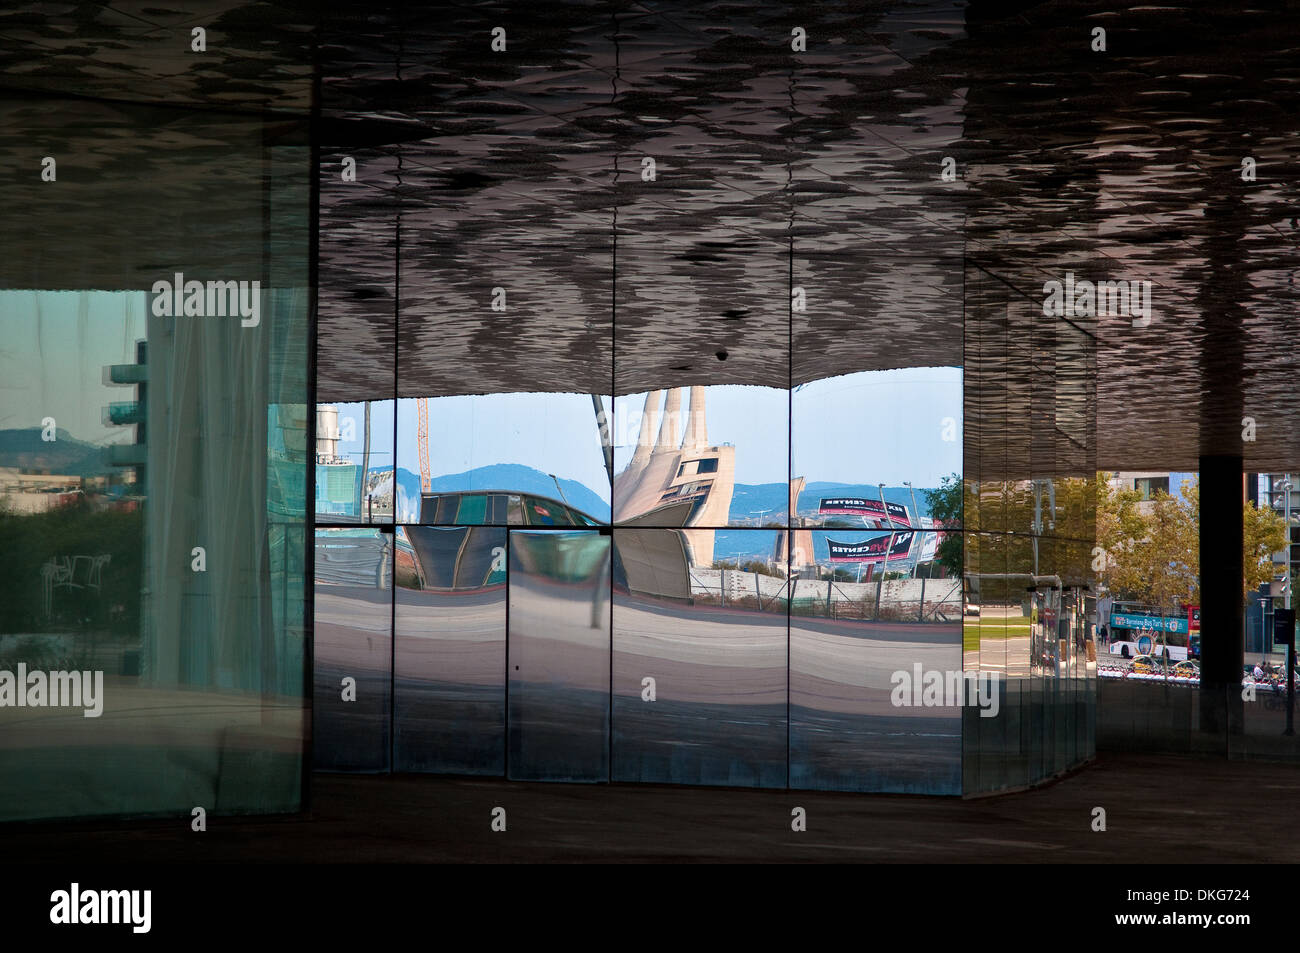 Reflections in Museu Blau - Blue Museum, Natural History and Science Museum, Barcelona, Catalonia, Spain - Stock Image